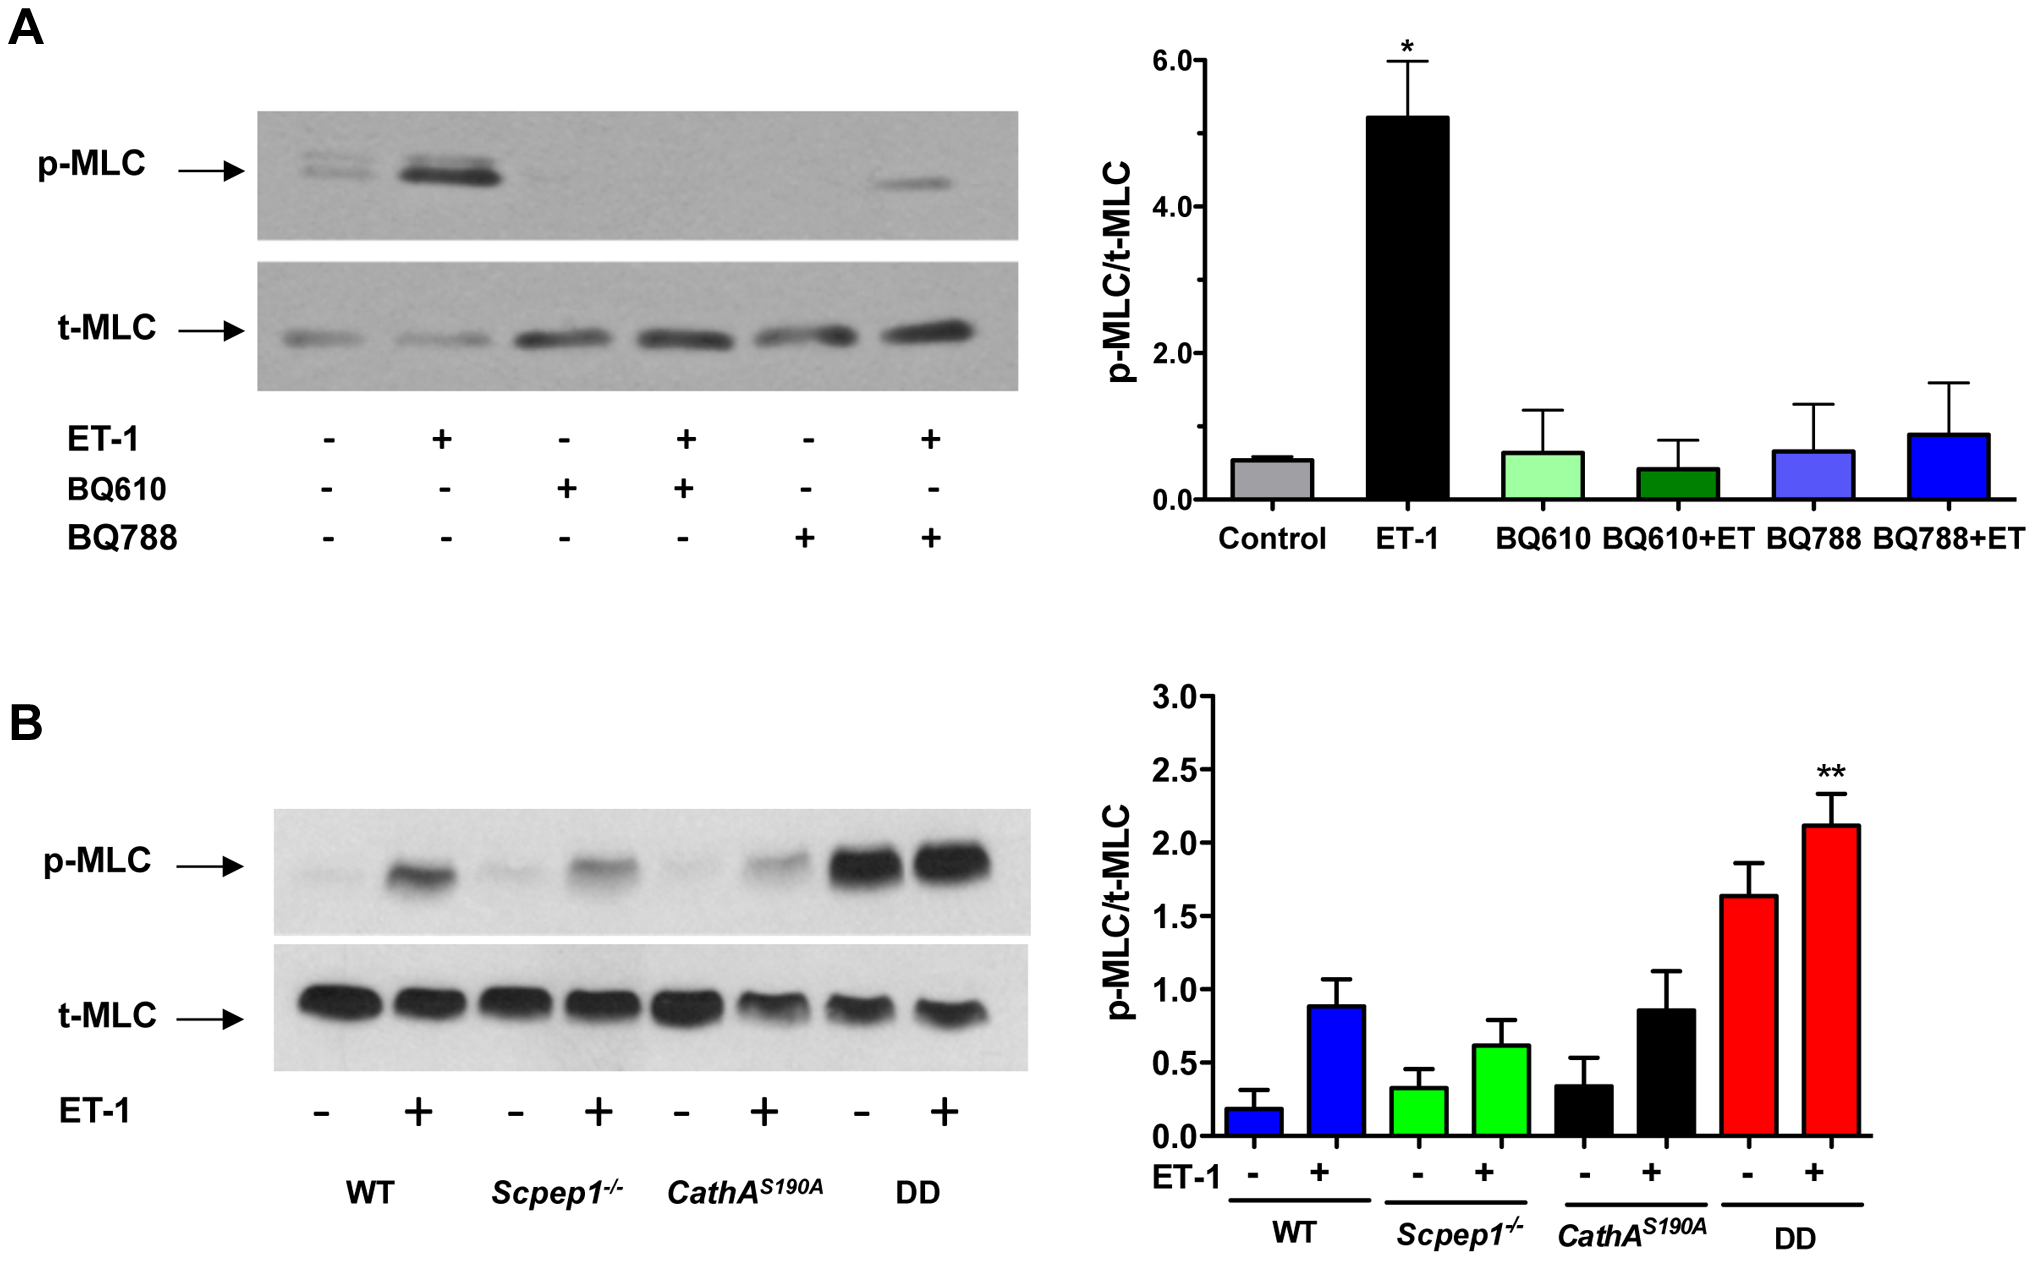 Cultured AVSMC from mice with combined CathA/Scpep1 deficiency show increased reactivity to ET-1.